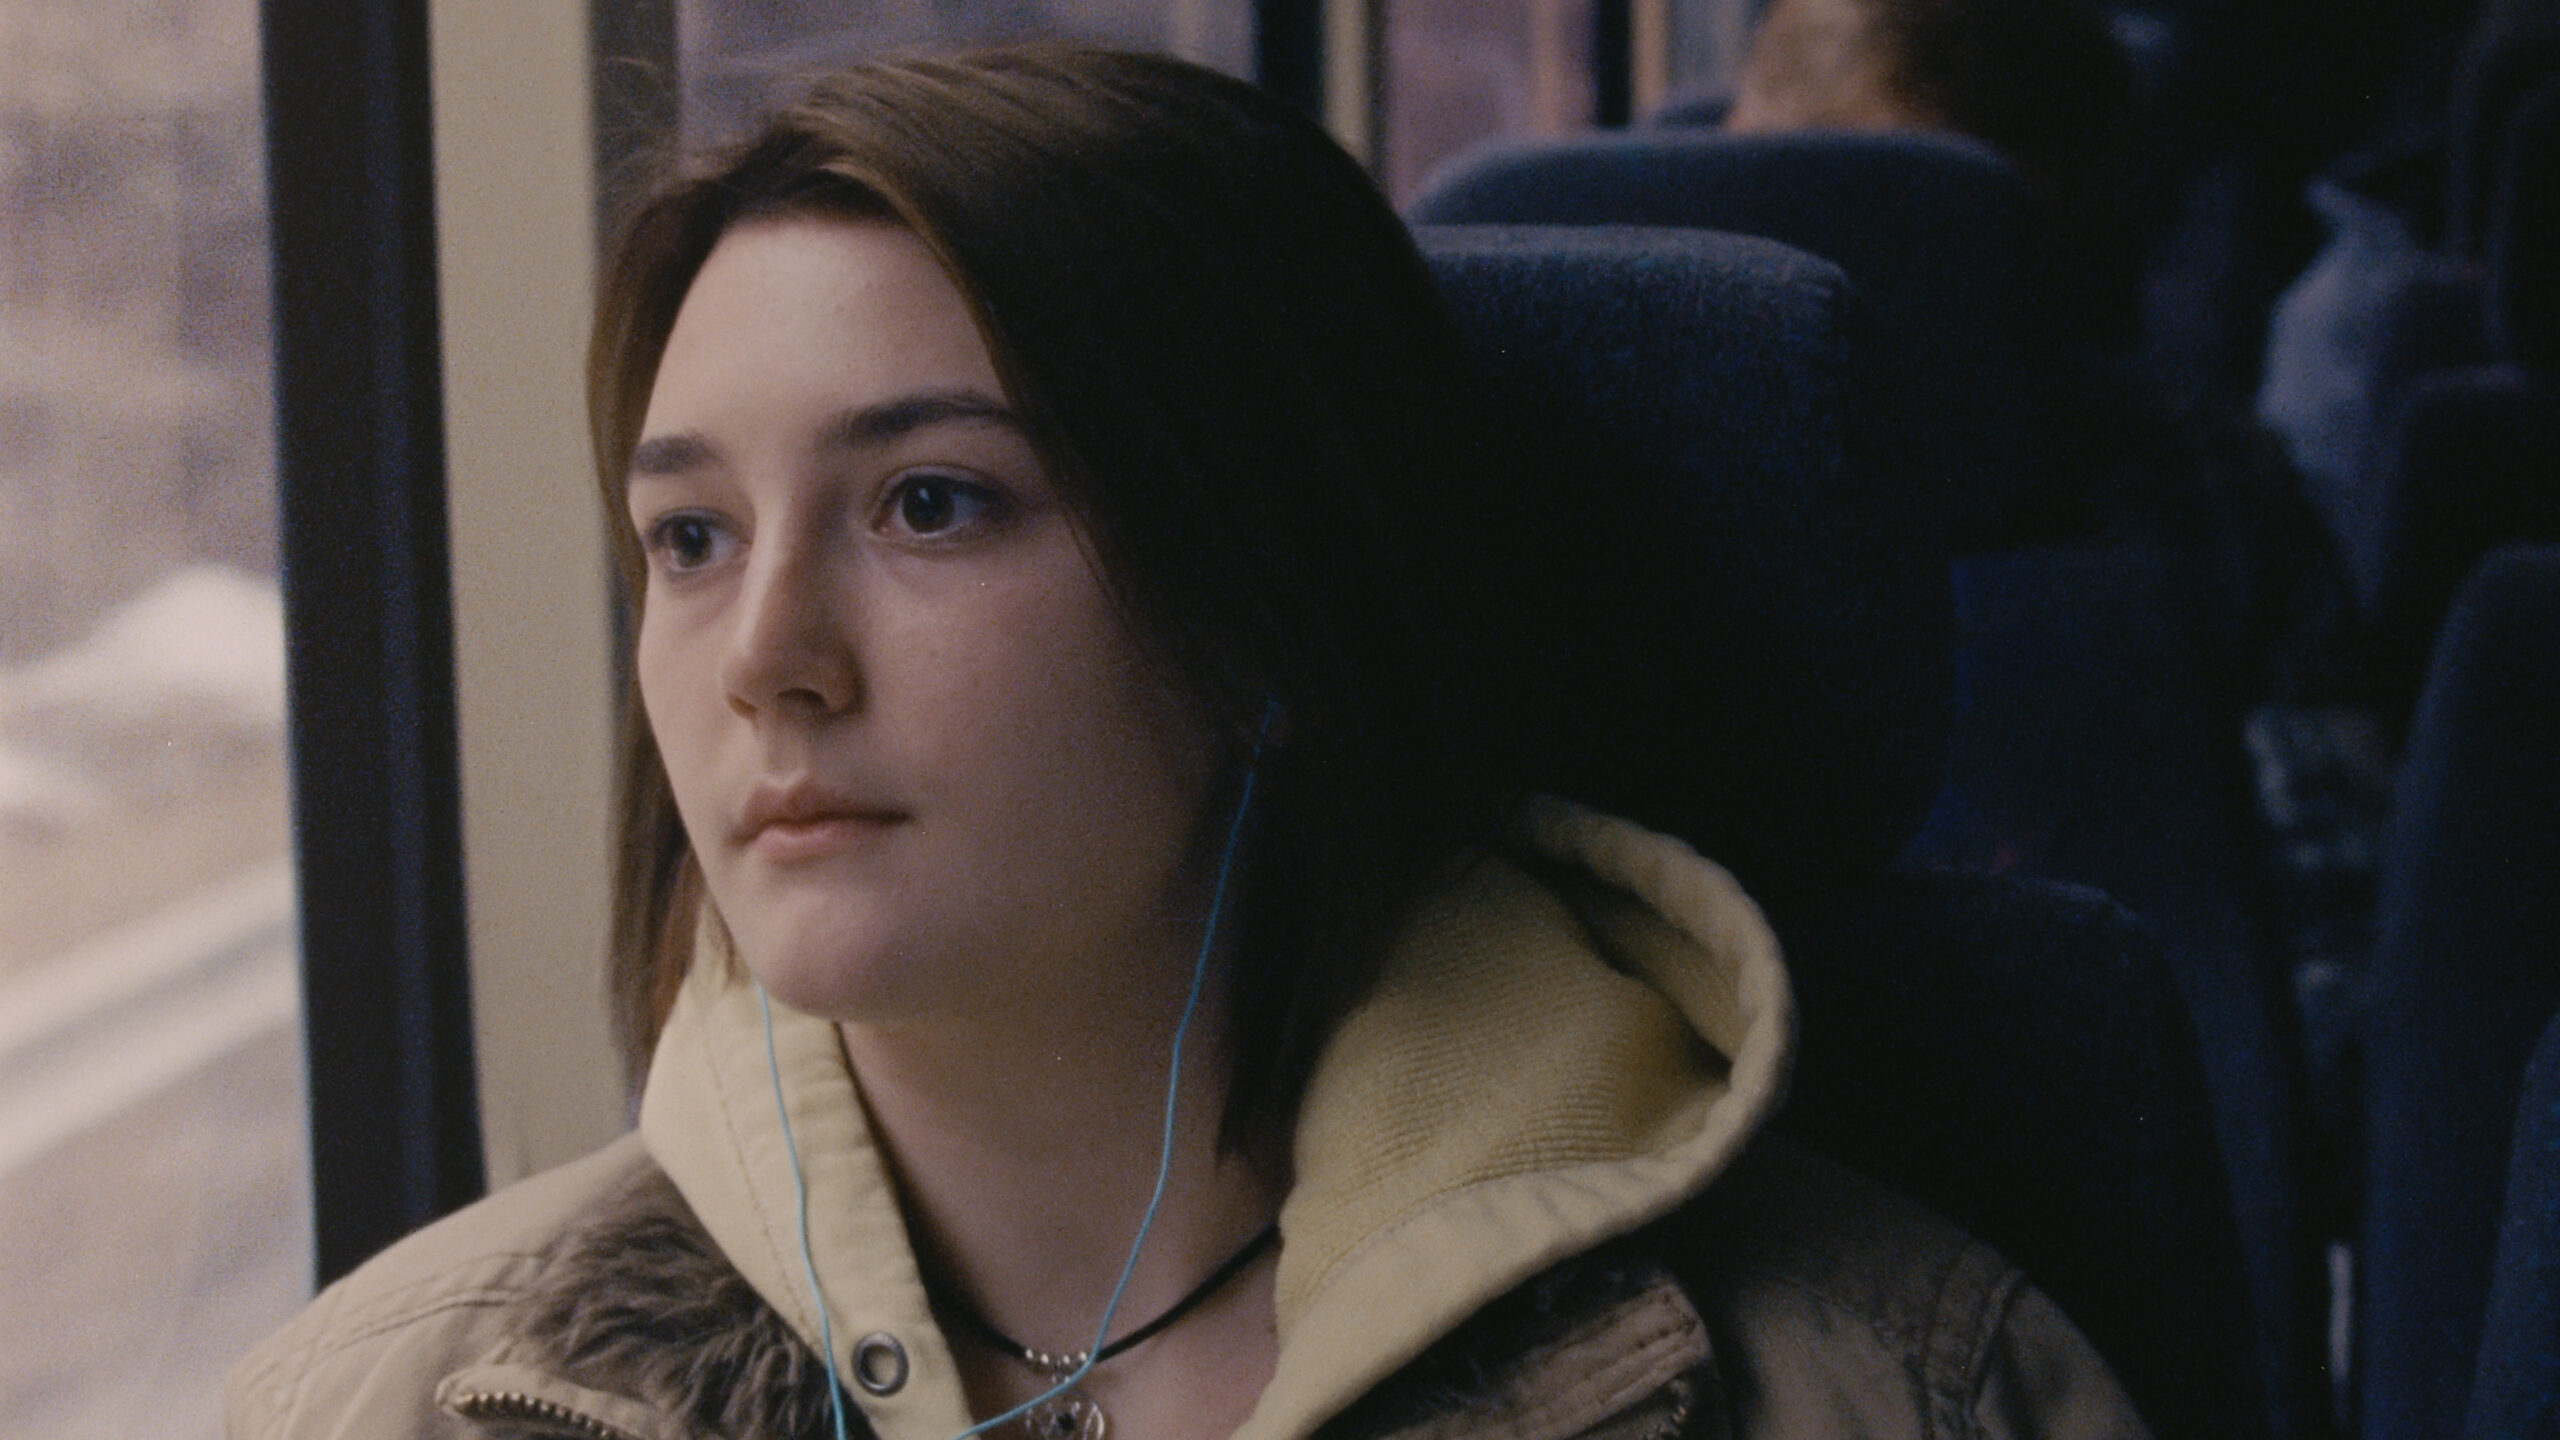 Sidney Flanigan stars as 17-year-old Autumn in <em>Never Rarely Sometimes Always. </em>